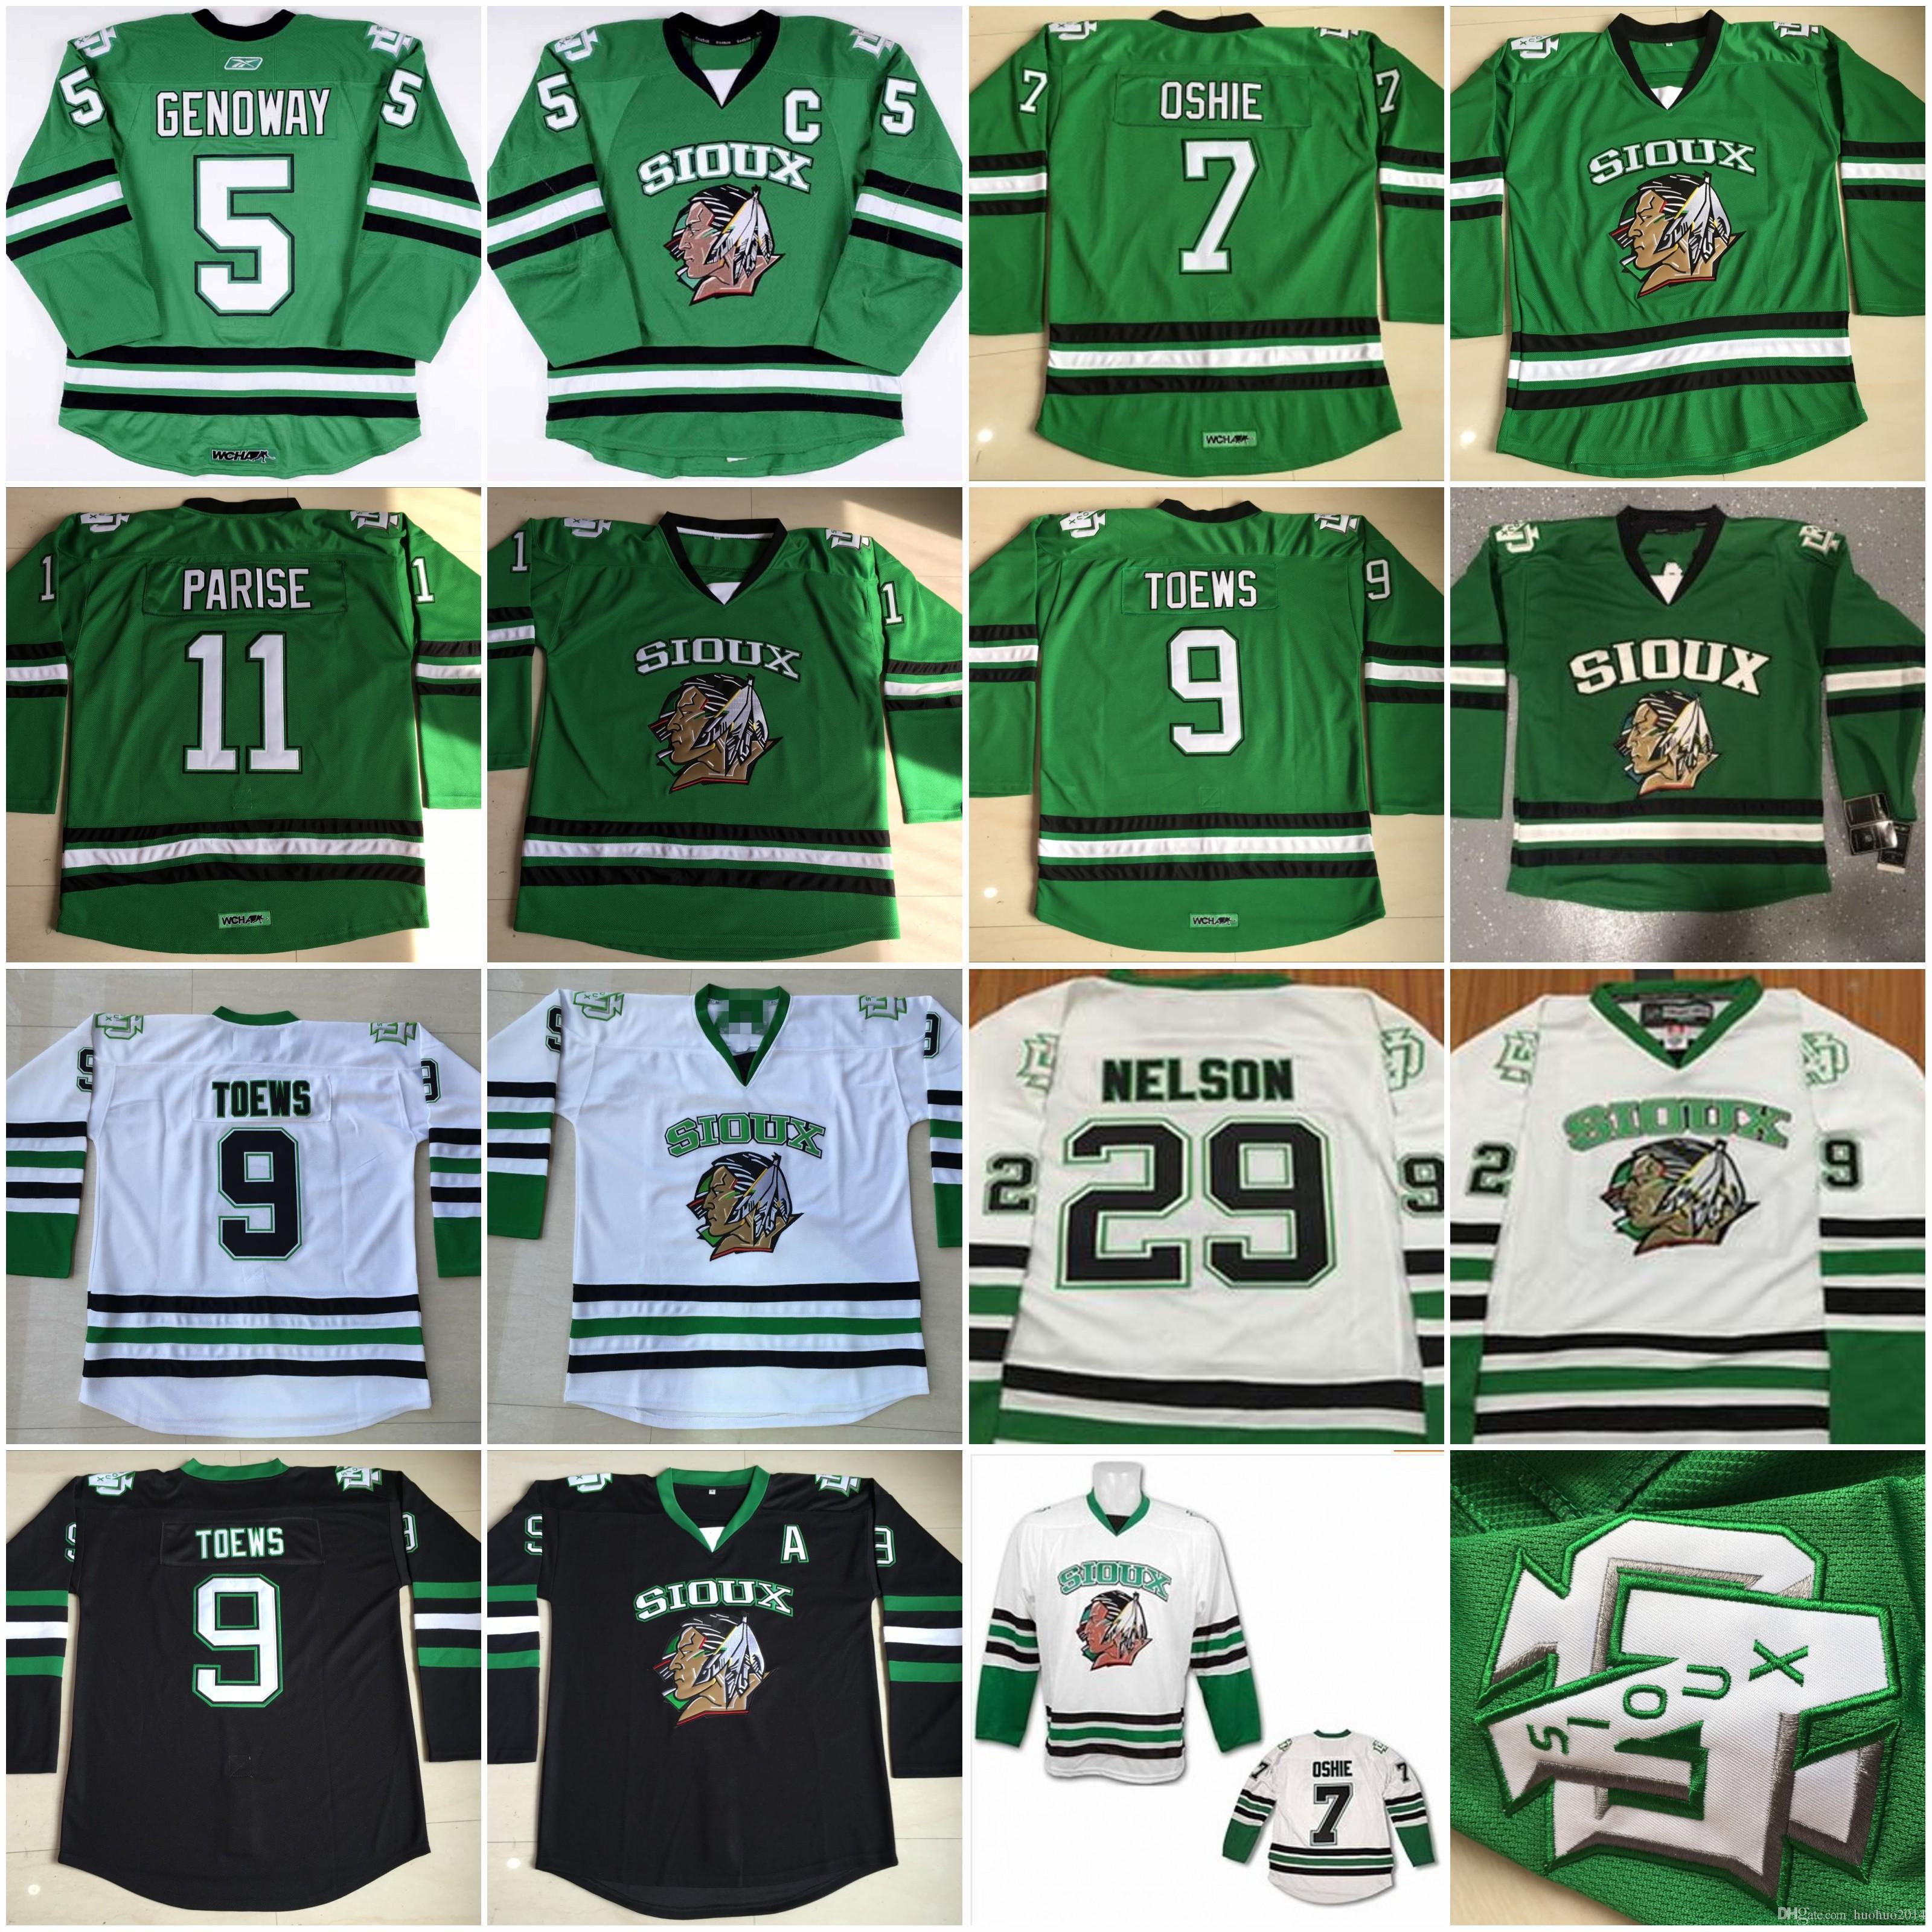 outlet store 4dfa8 97f78 Movie NORTH DAKOTA Fighting Sioux Jersey Zach Parise TJ Oshie Jonathan  Toews Spiewak Chay Genoway Brock Nelson College Hockey Jerseys